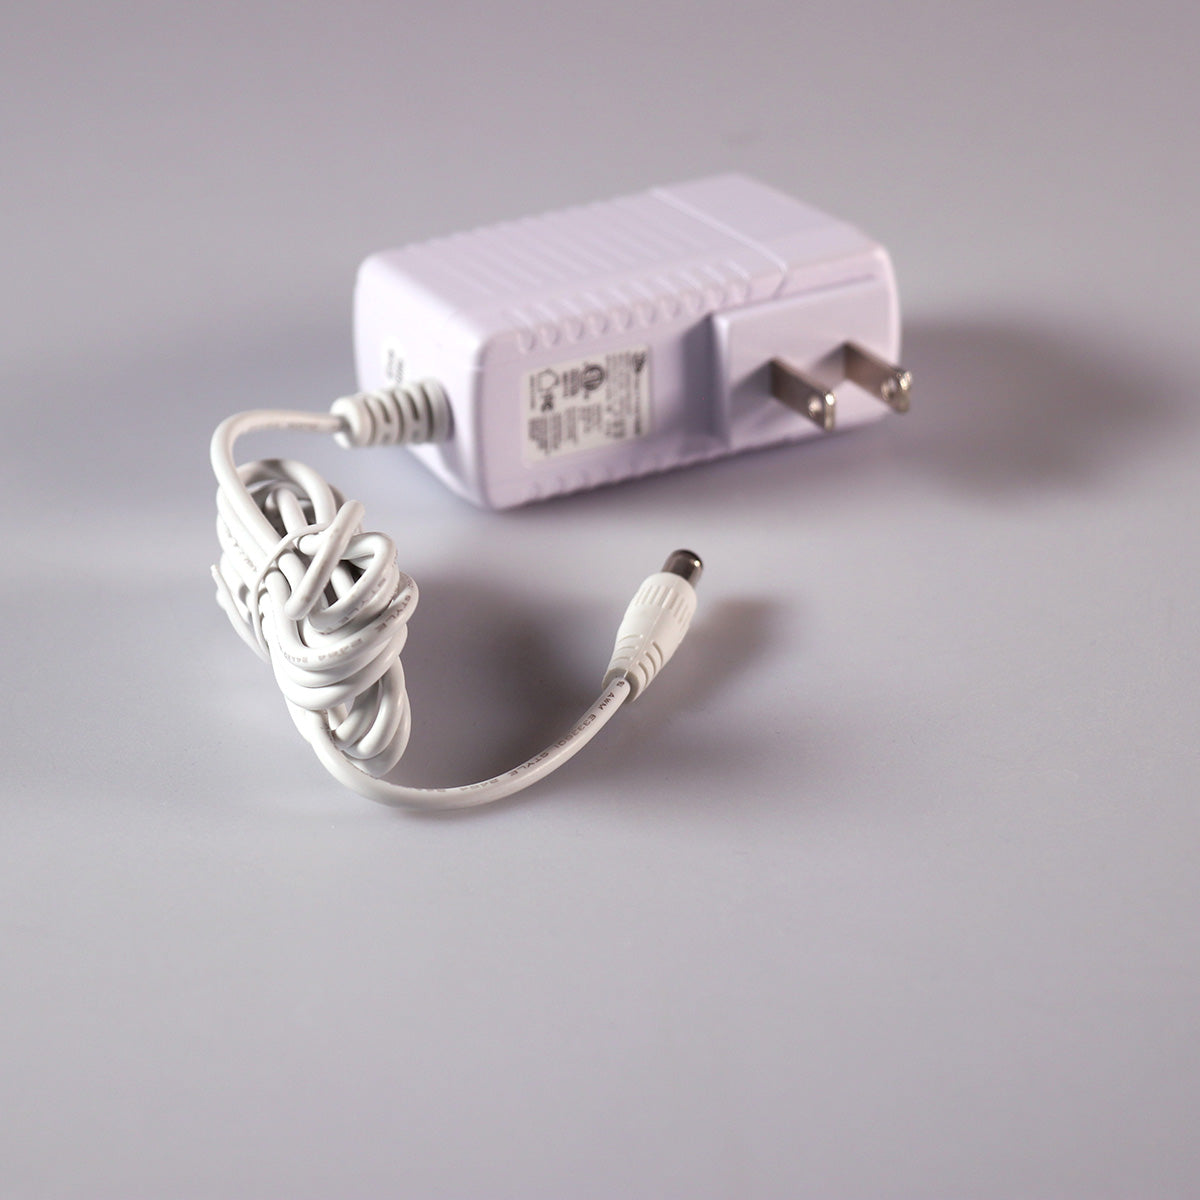 Stadler Form Eva Little Ultrasonic Humidifier Power Cord